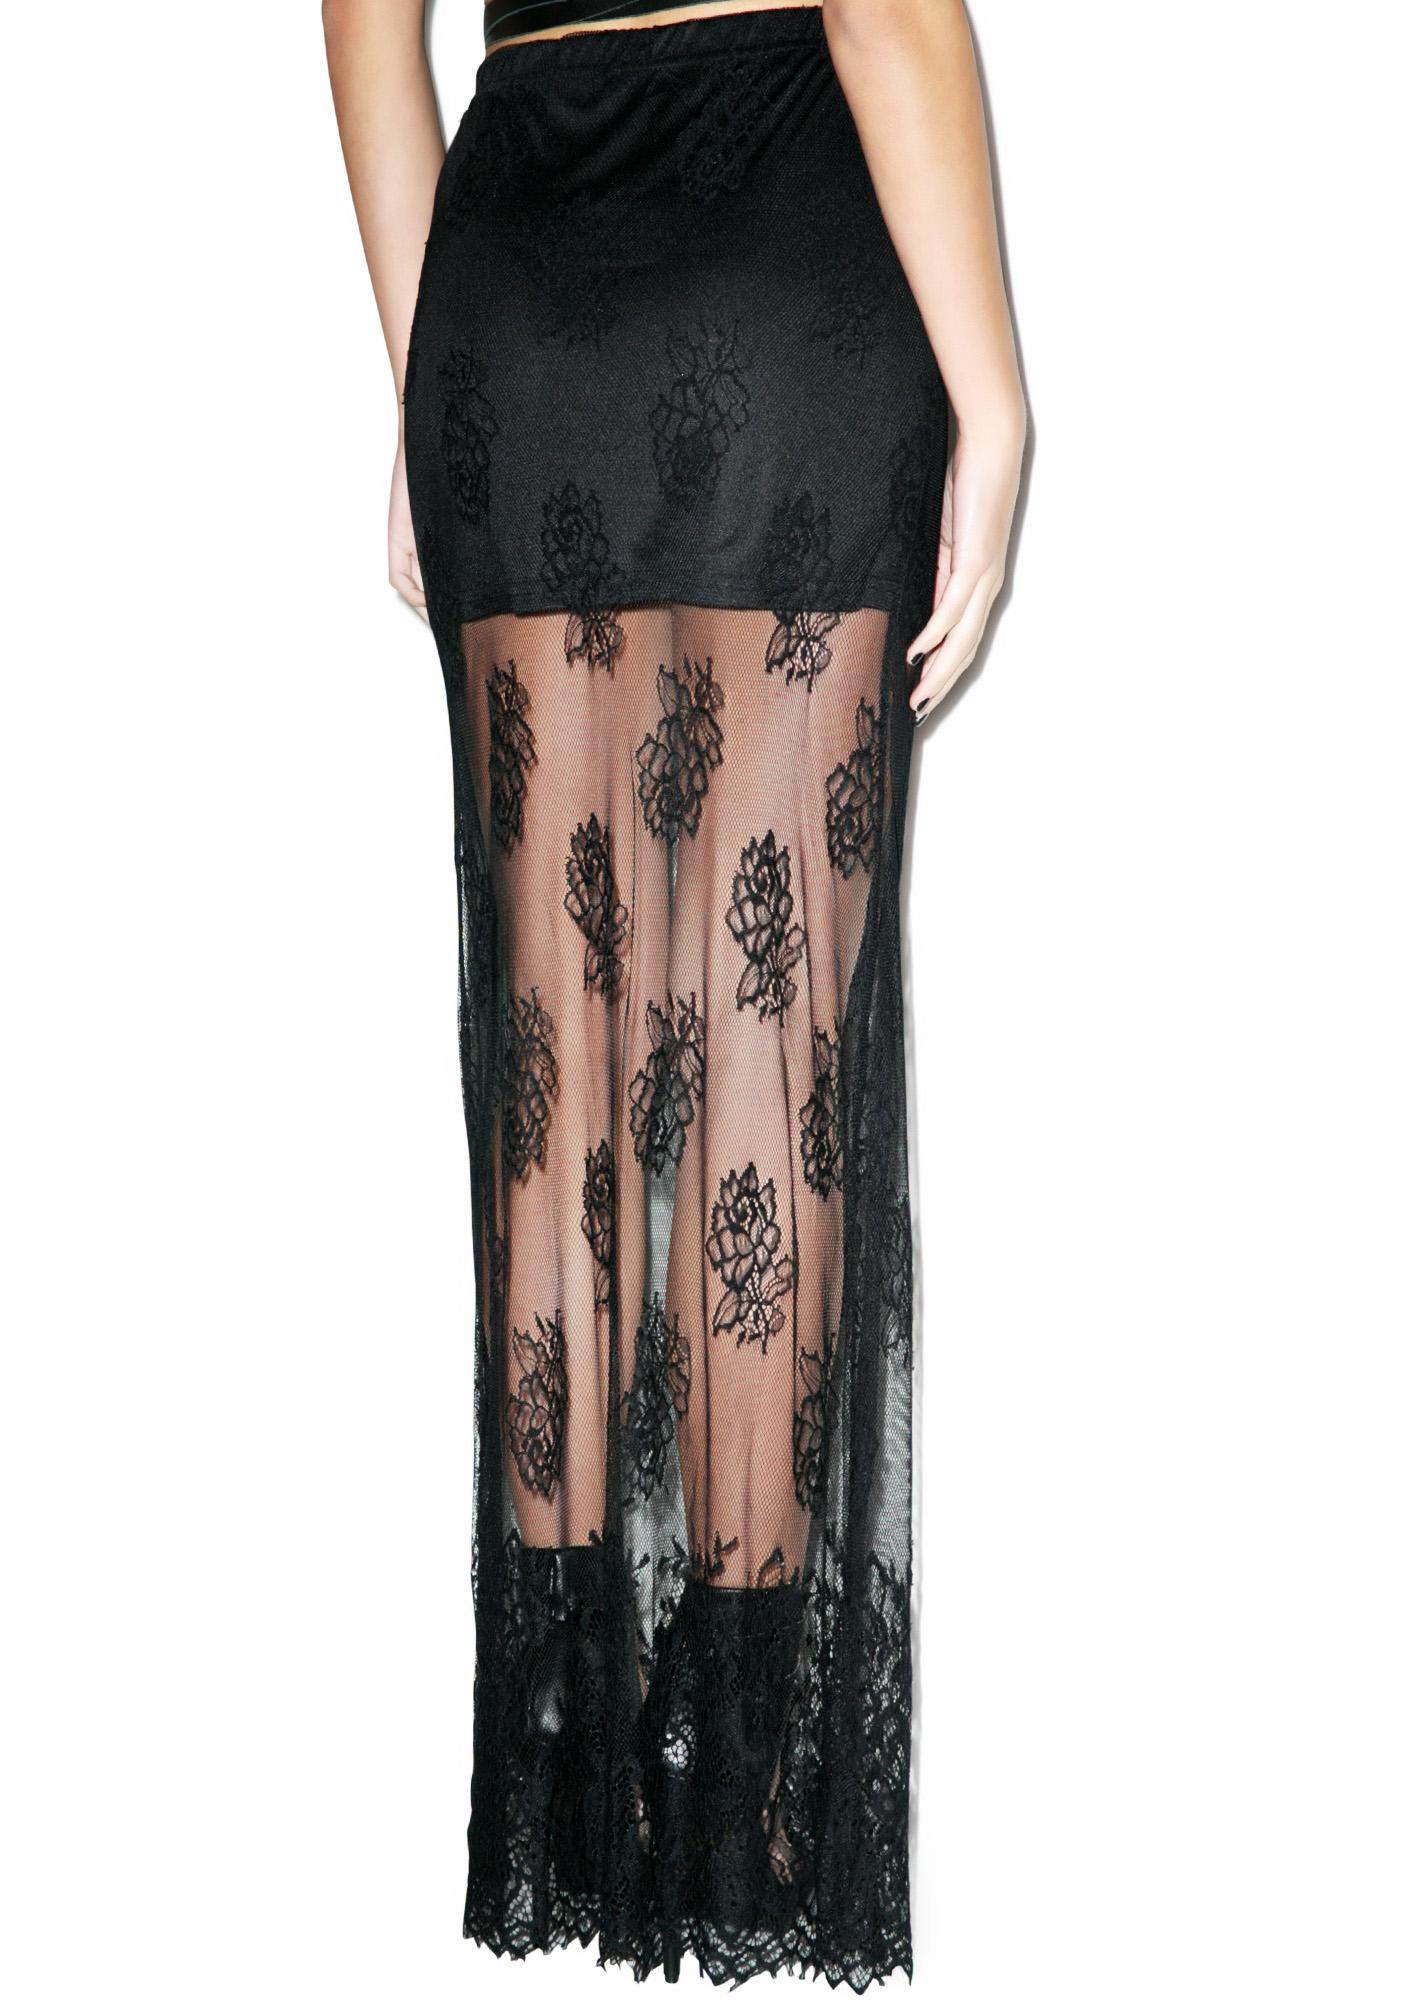 Desperado Lace Maxi Skirt